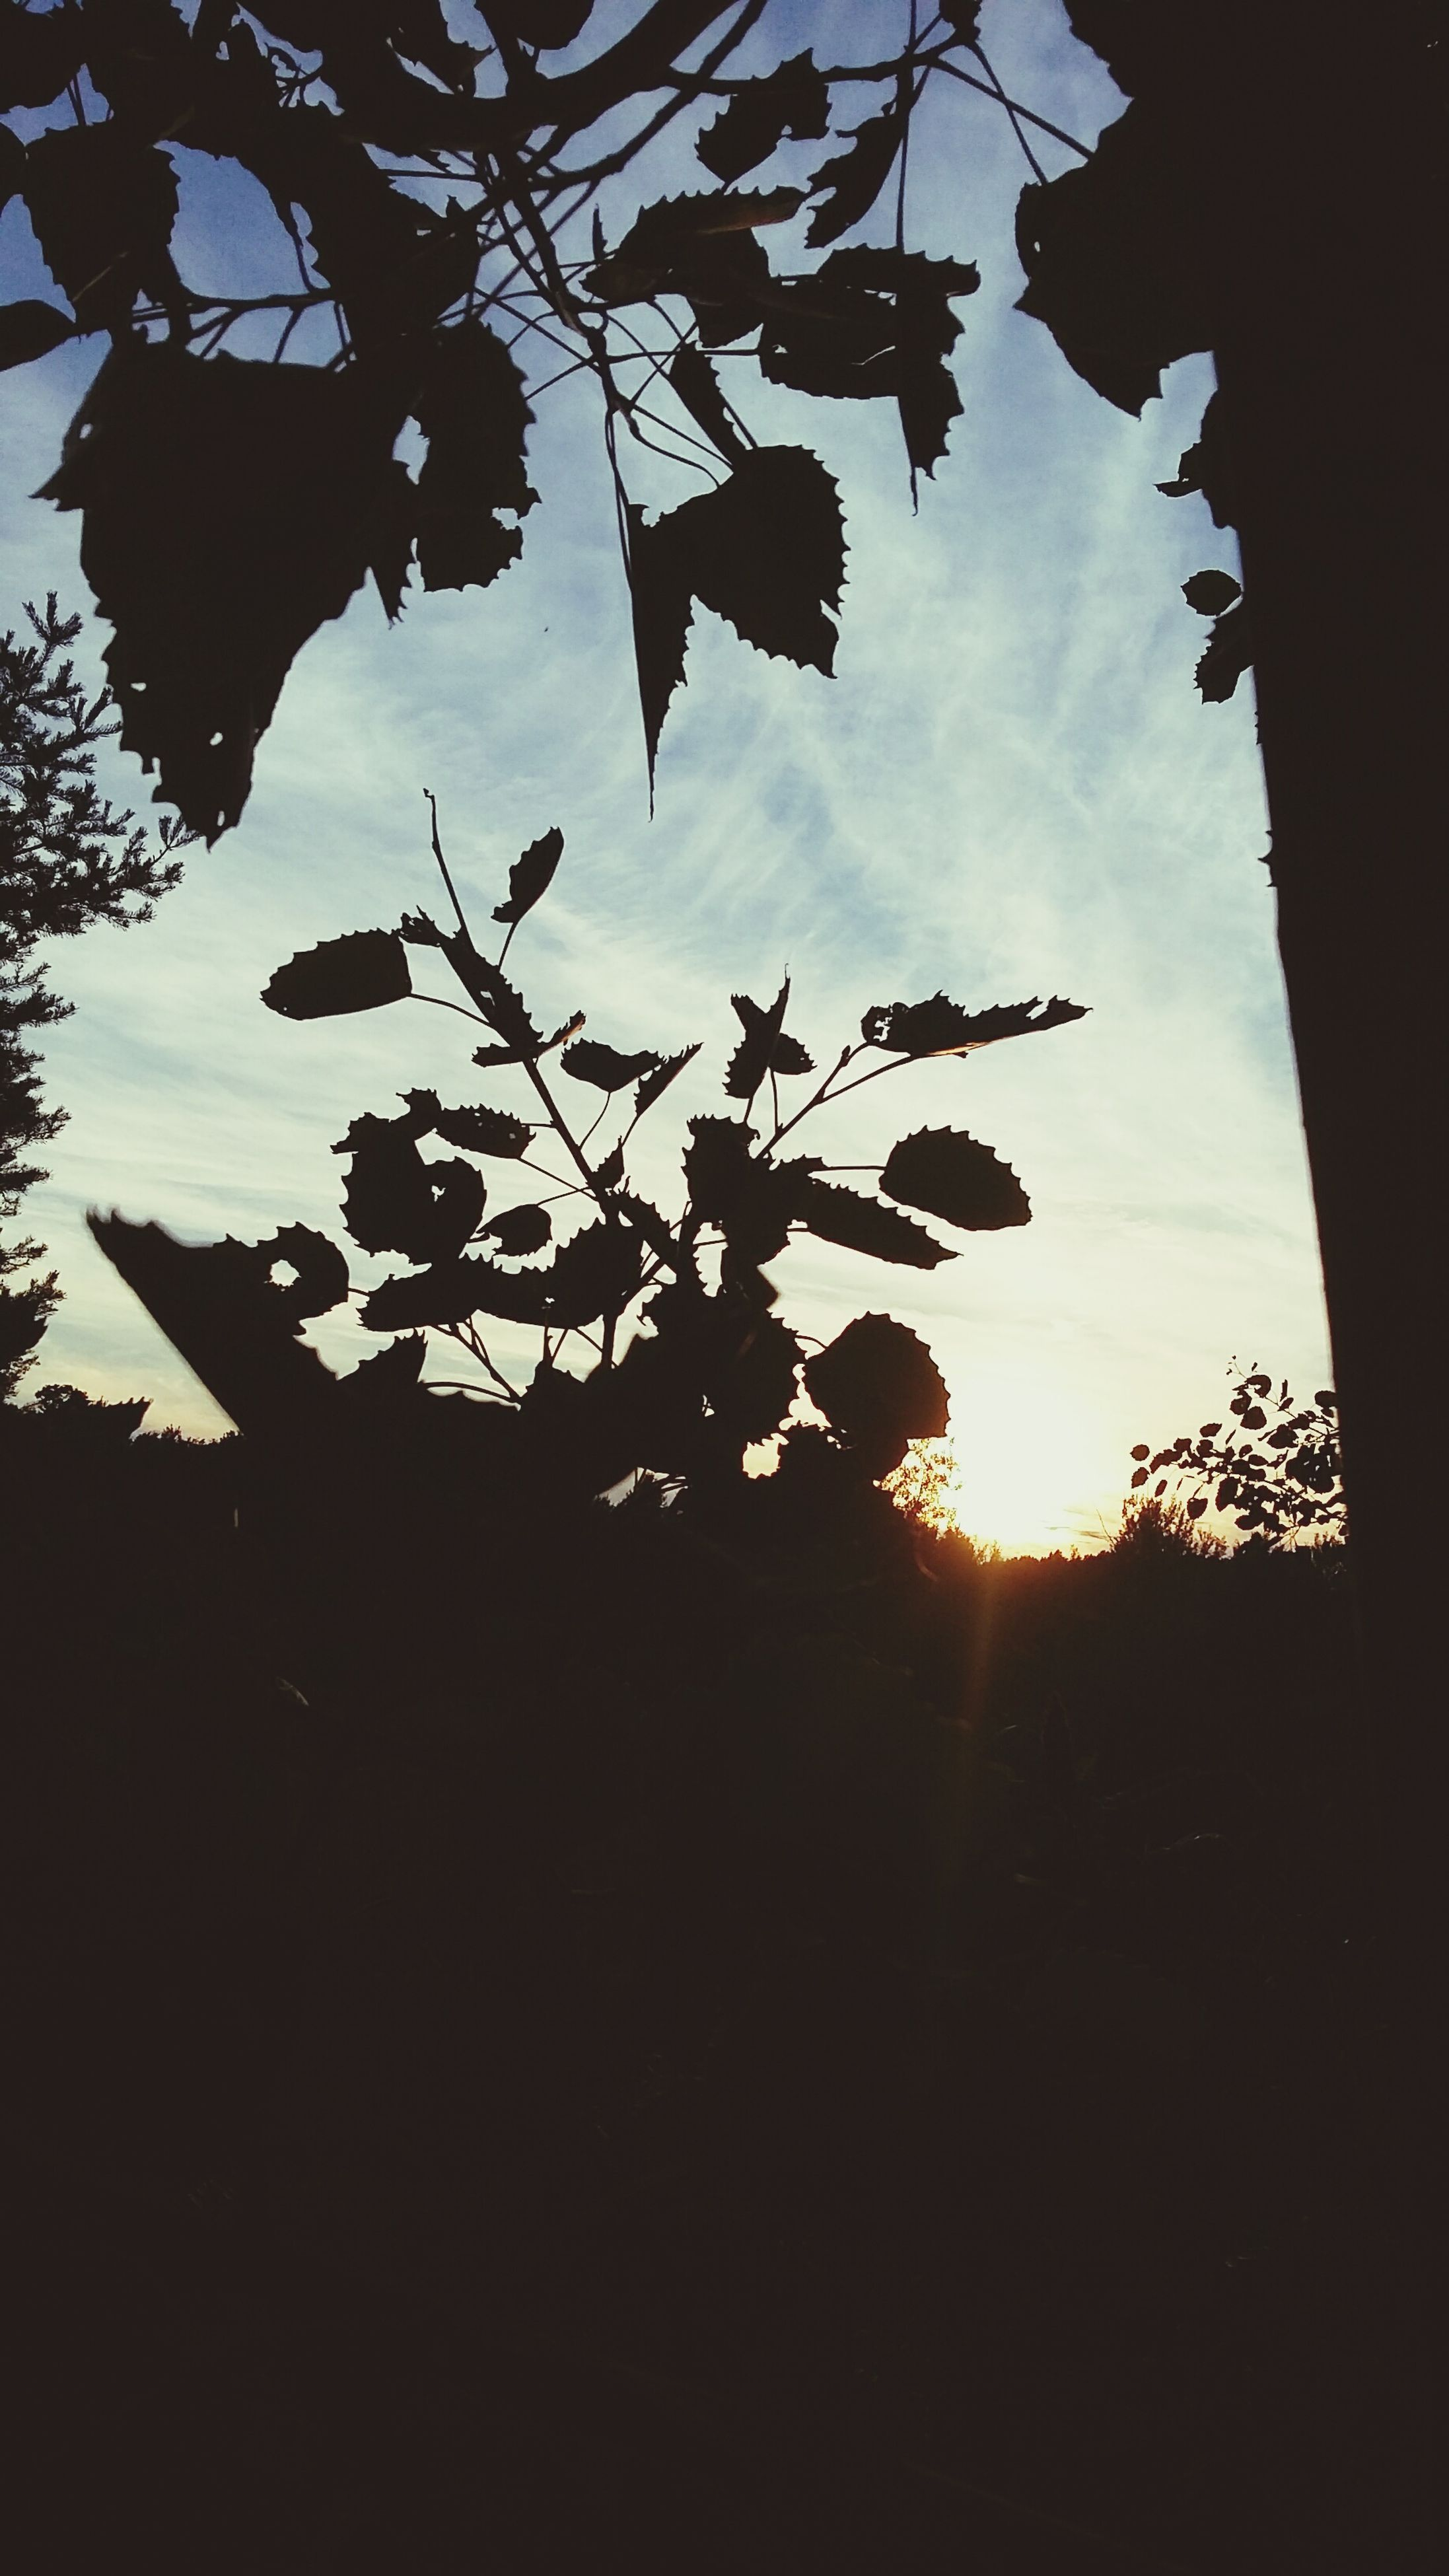 silhouette, tree, leaf, branch, growth, sunset, sky, scenics, tranquil scene, tranquility, beauty in nature, nature, plant, sun, dark, outline, outdoors, leaves, back lit, majestic